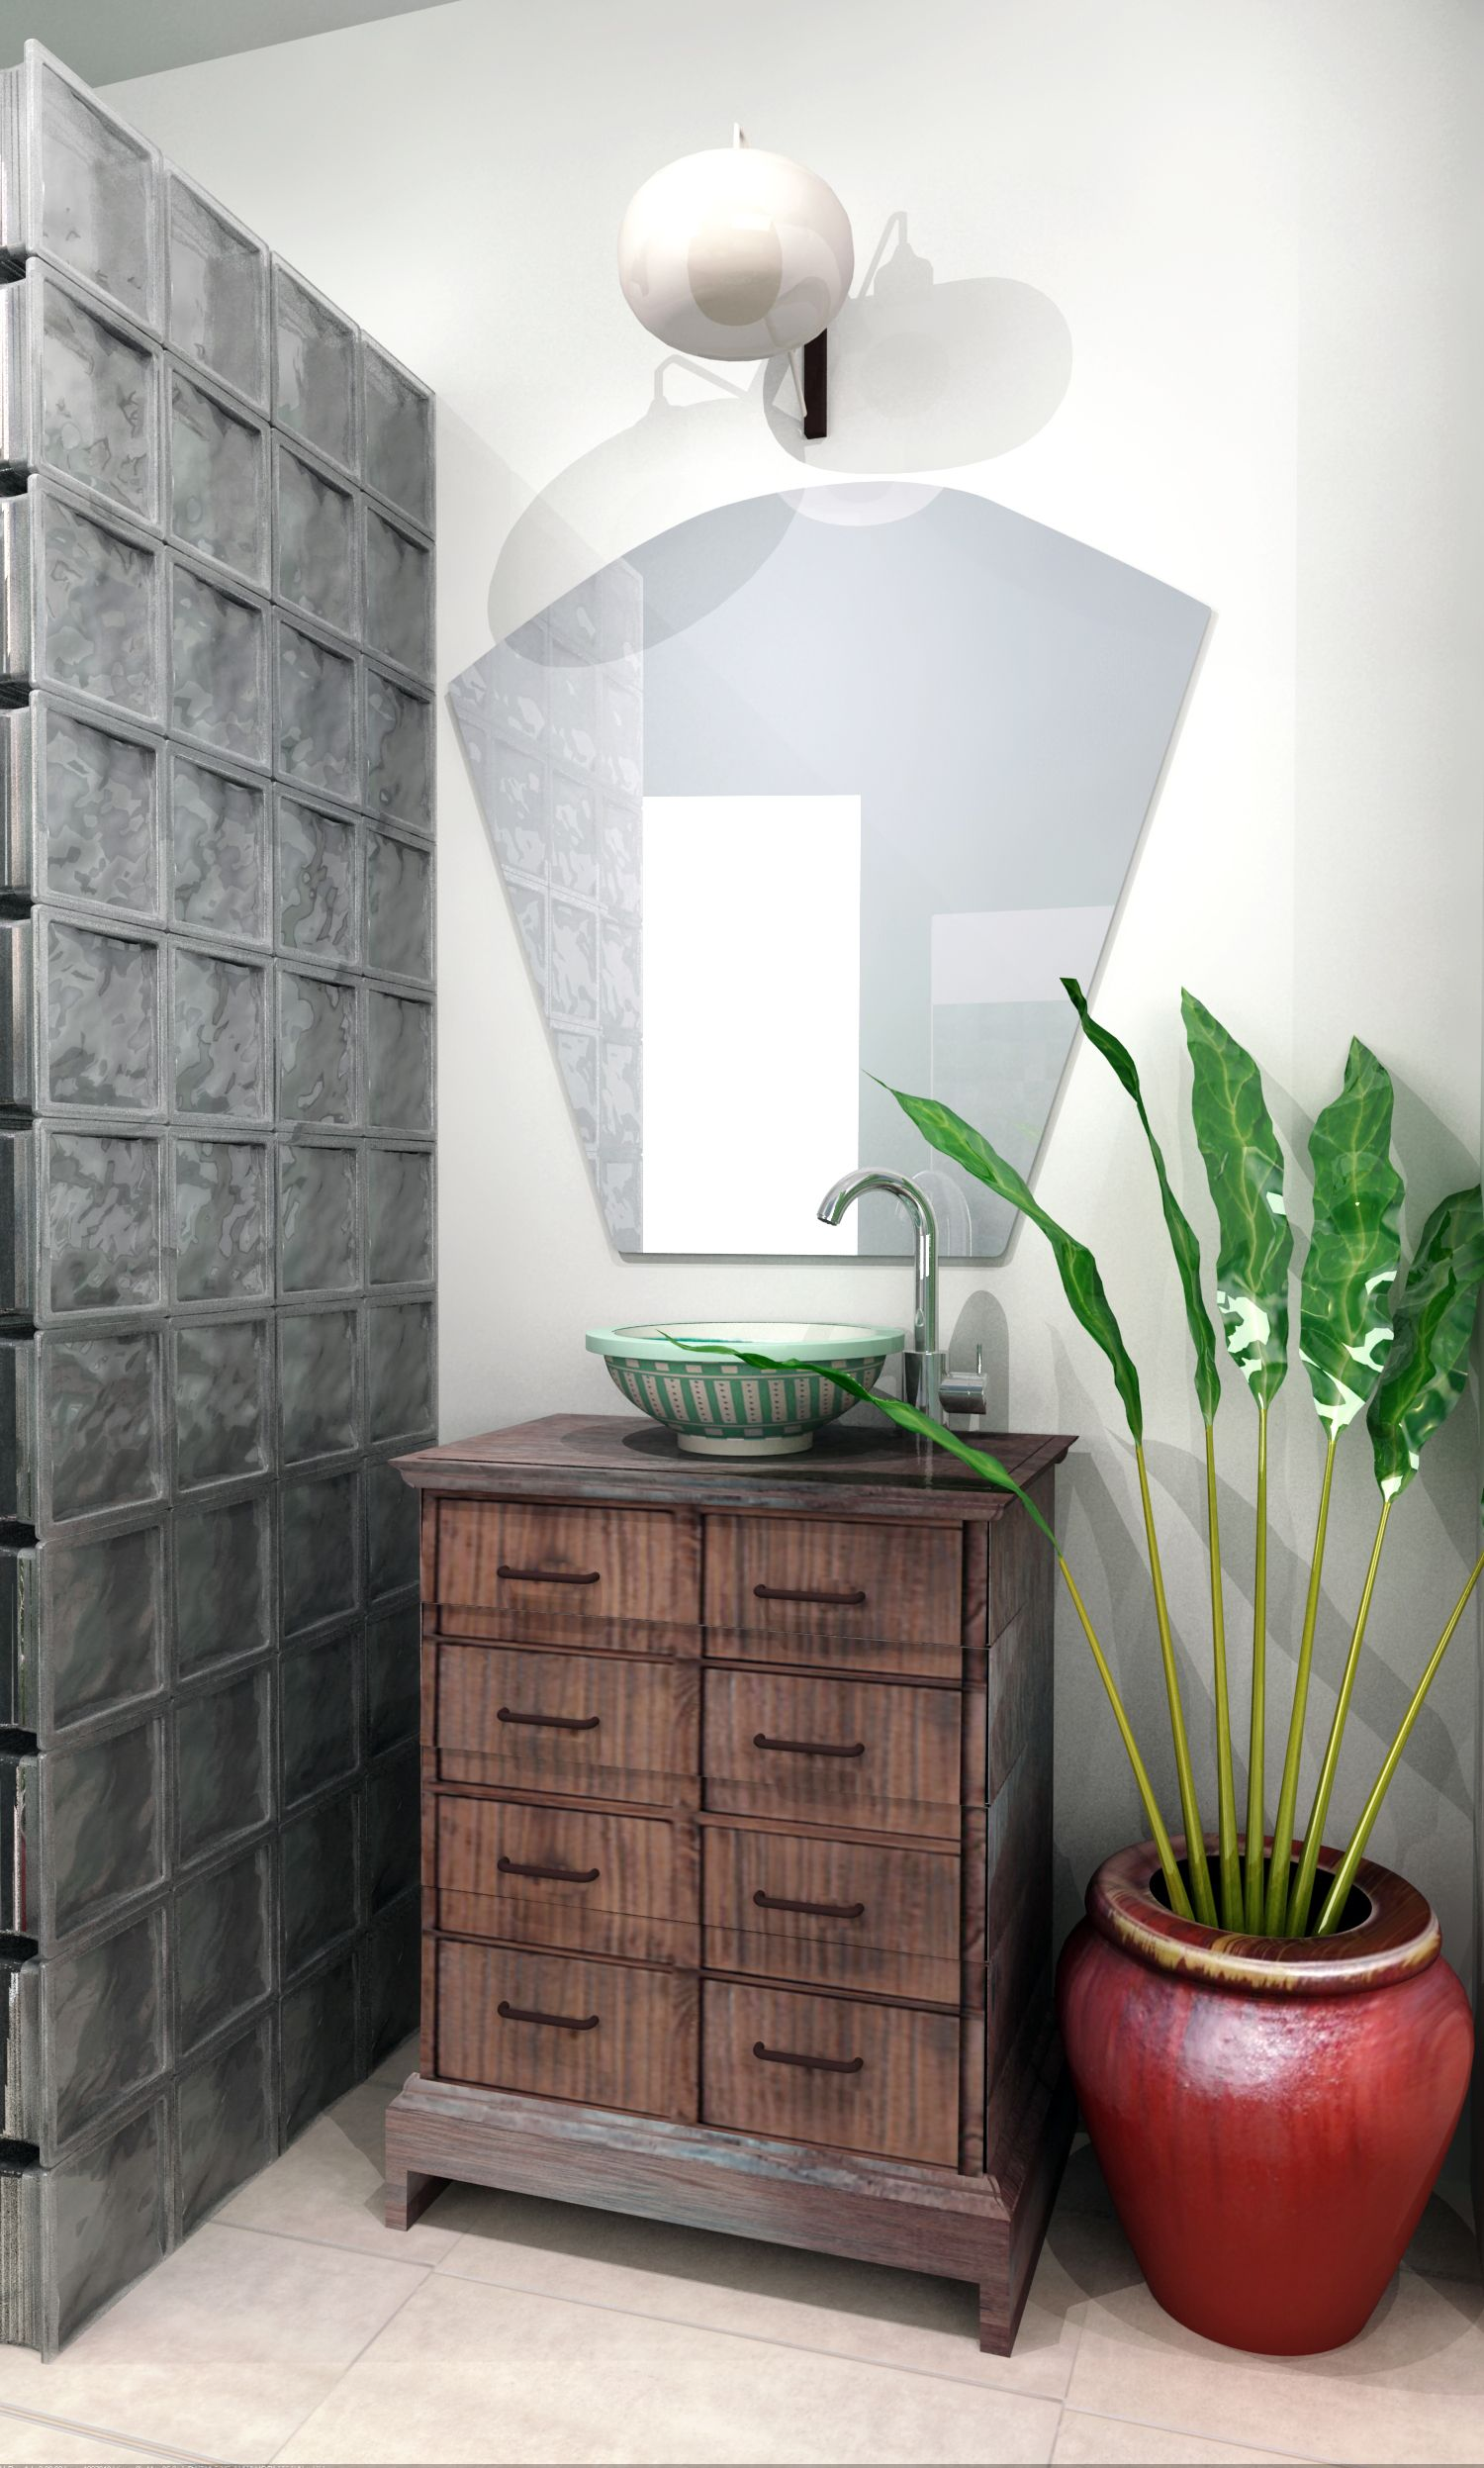 Design and renovation of a warm, cozy and tropical bathroom with a ...